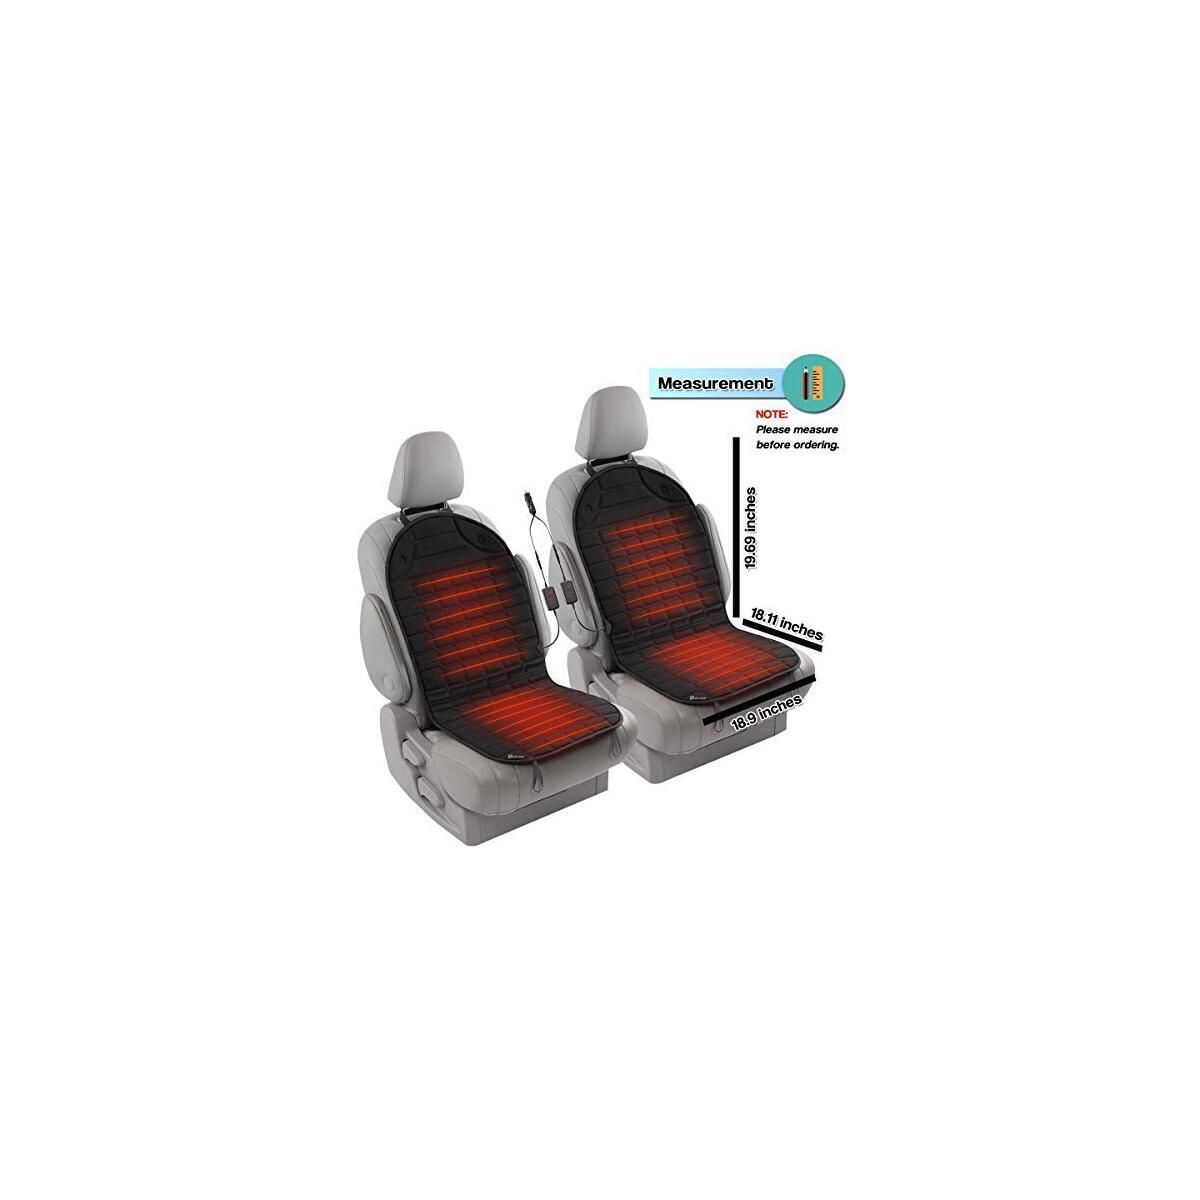 Zento Deals 2pc. Black Car Seat Cushion with 1 Integrated Plug Adjustable Temperature Pain Reliever 12V